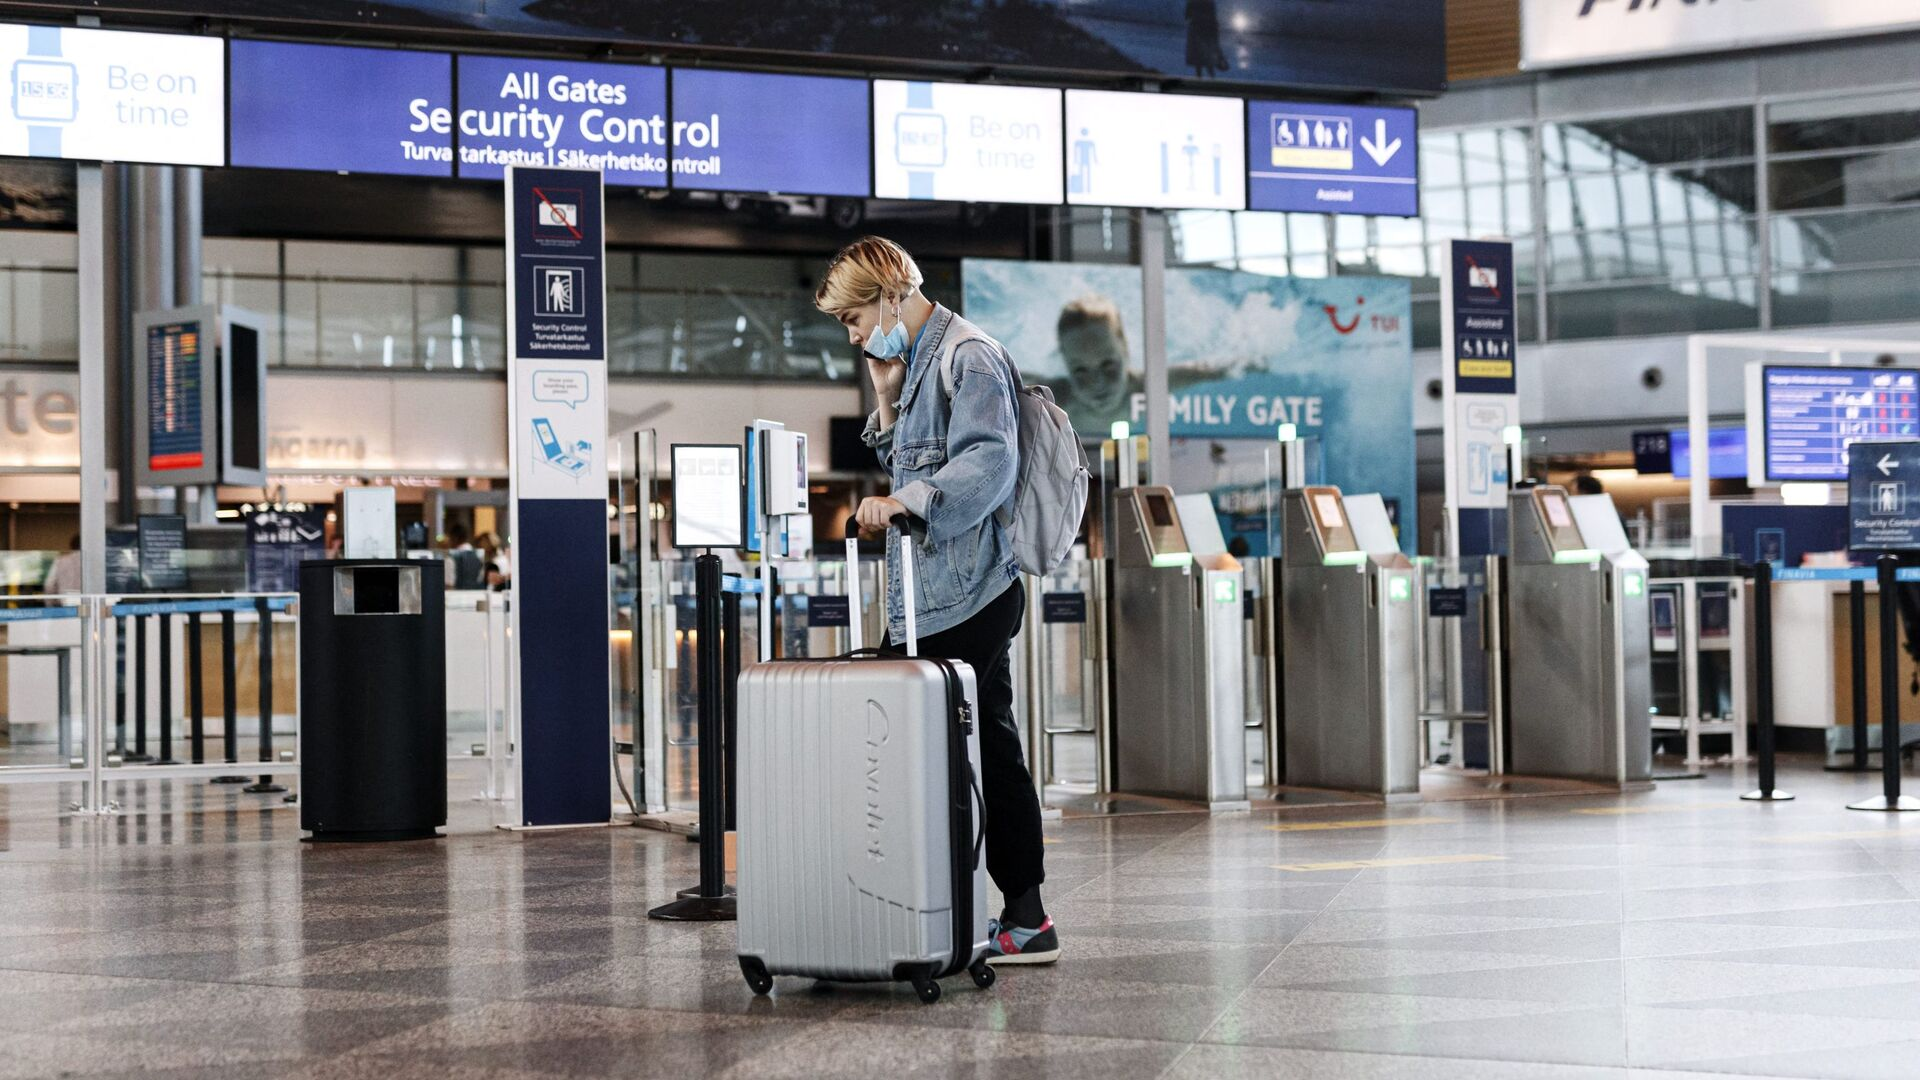 A passenger wears a face mask at the Helsinki-Vantaa airport in Vantaa, Finland on July 13, 2020 as Finnish Government eased COVID-19 pandemic in and out travel restrictions with several EU countries. - Sputnik International, 1920, 21.05.2021